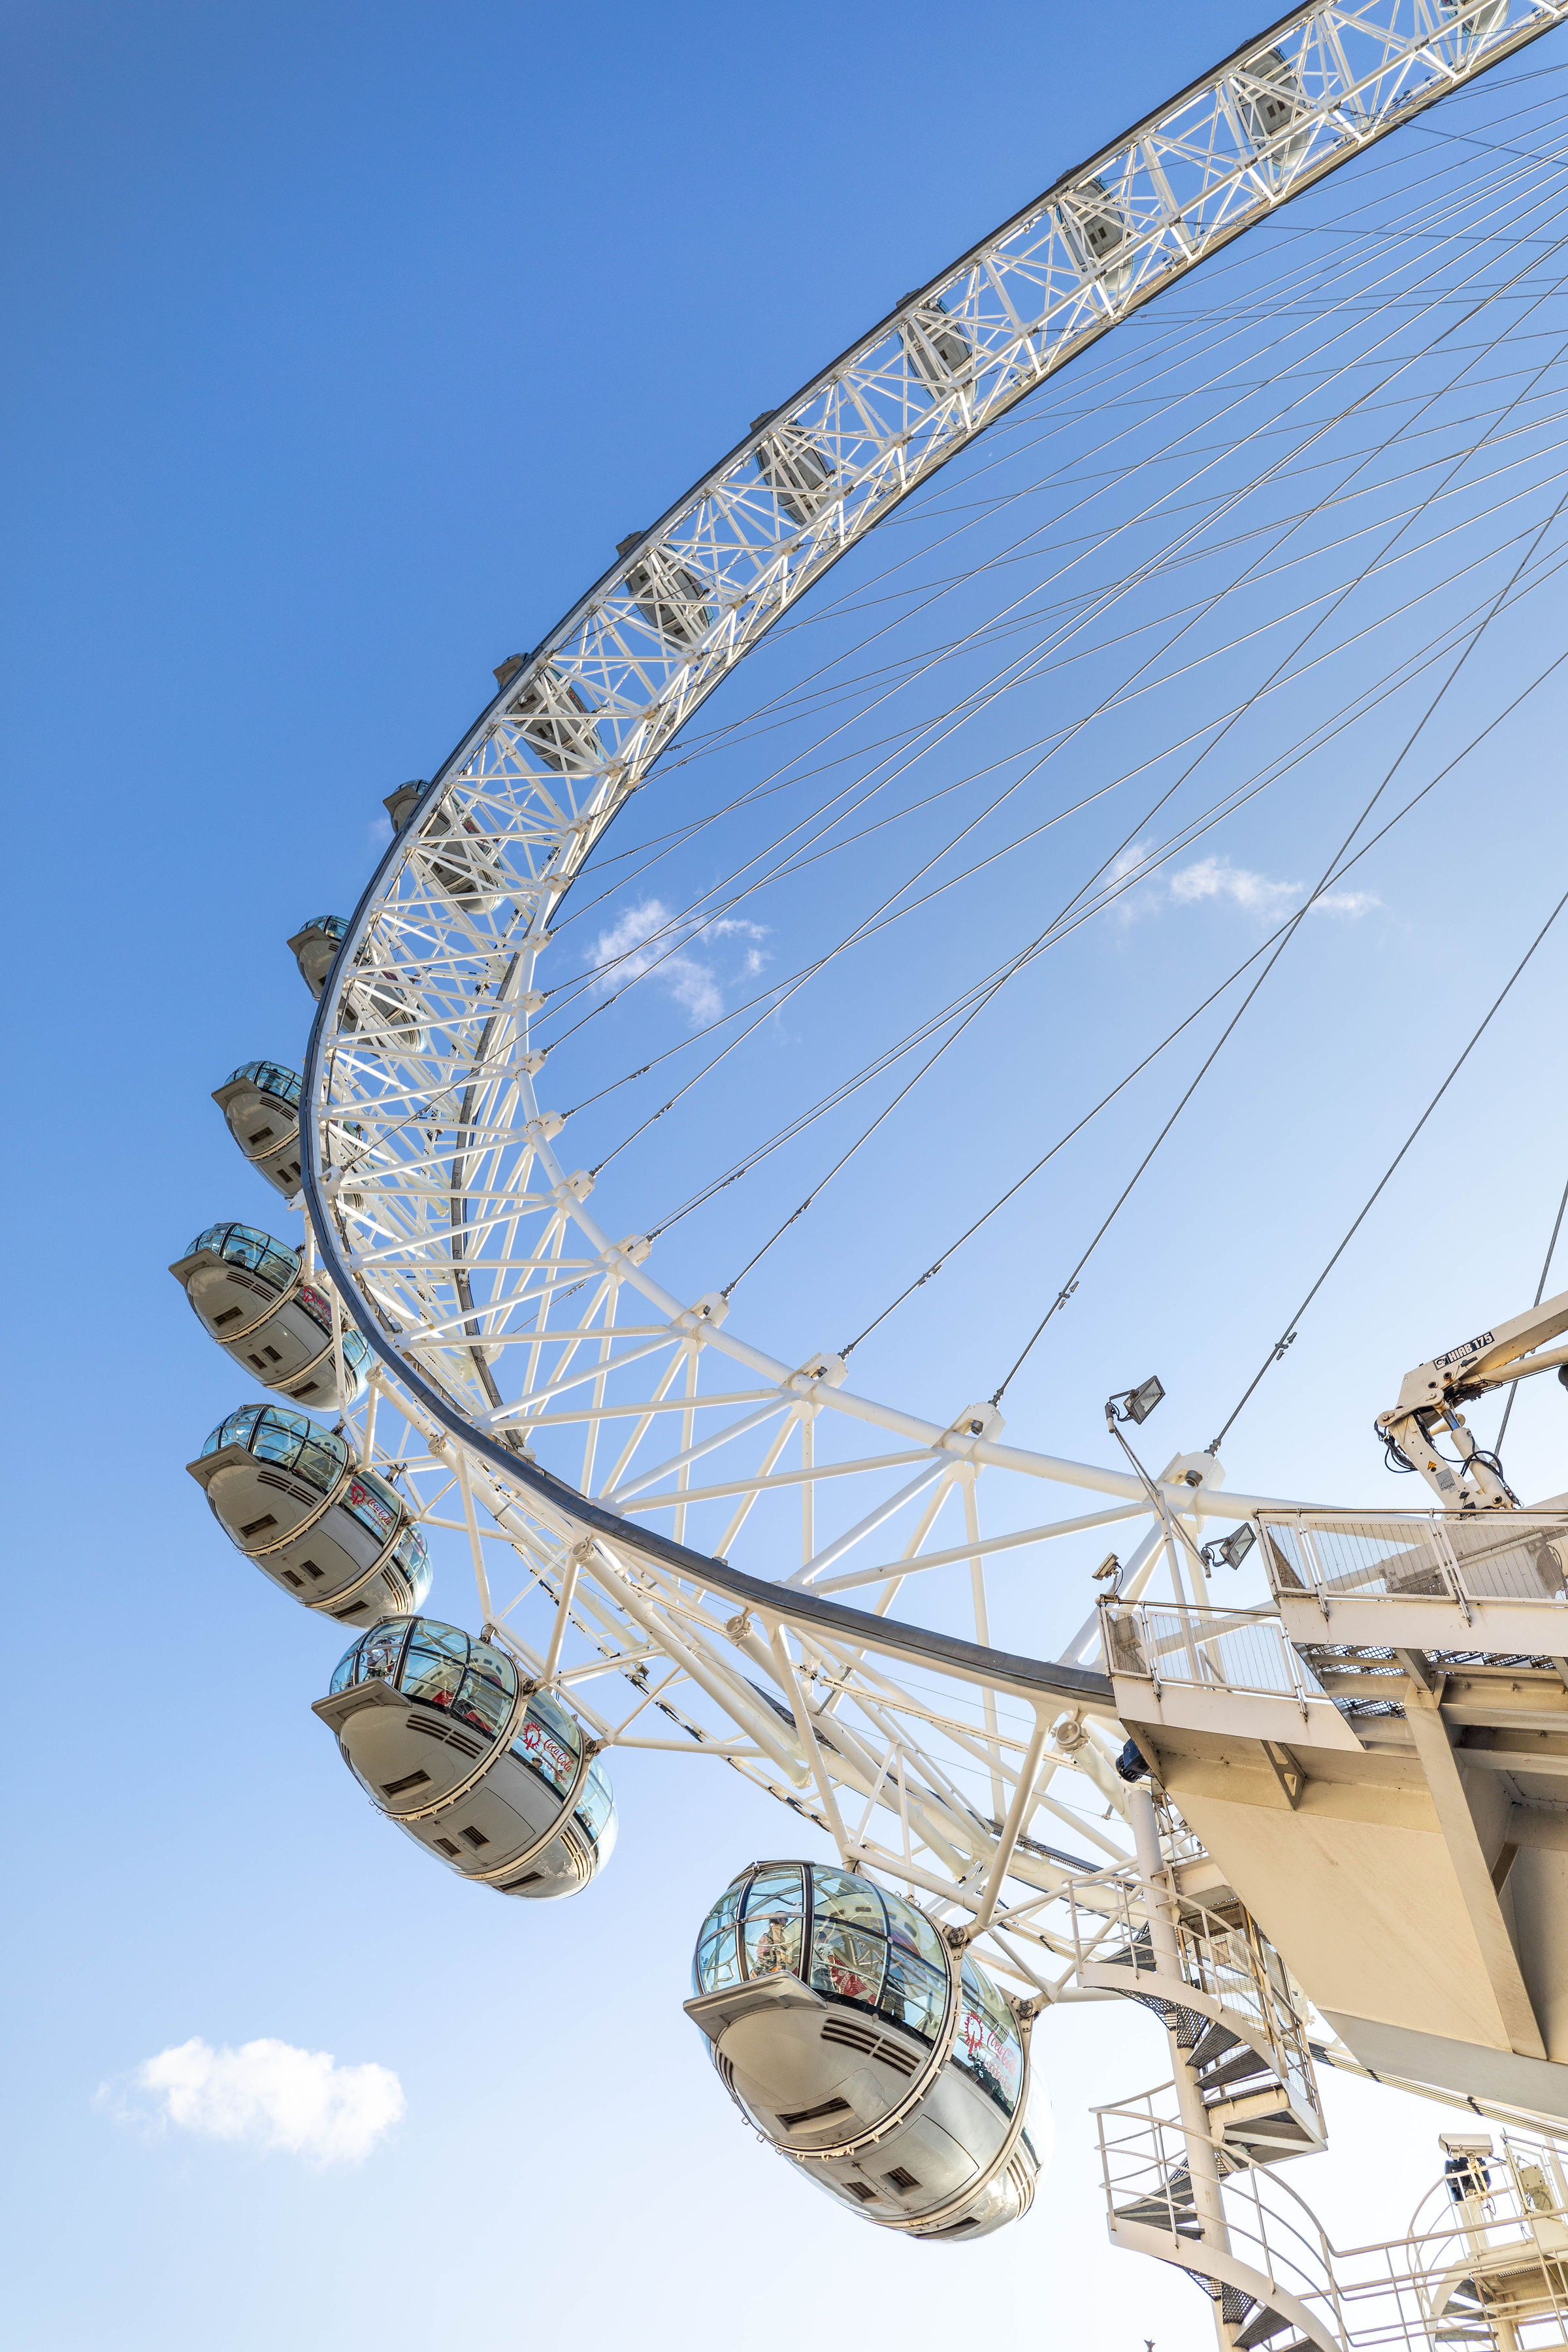 The London Eye Ferris wheel London City Guide the Official Travel Guide of London, England